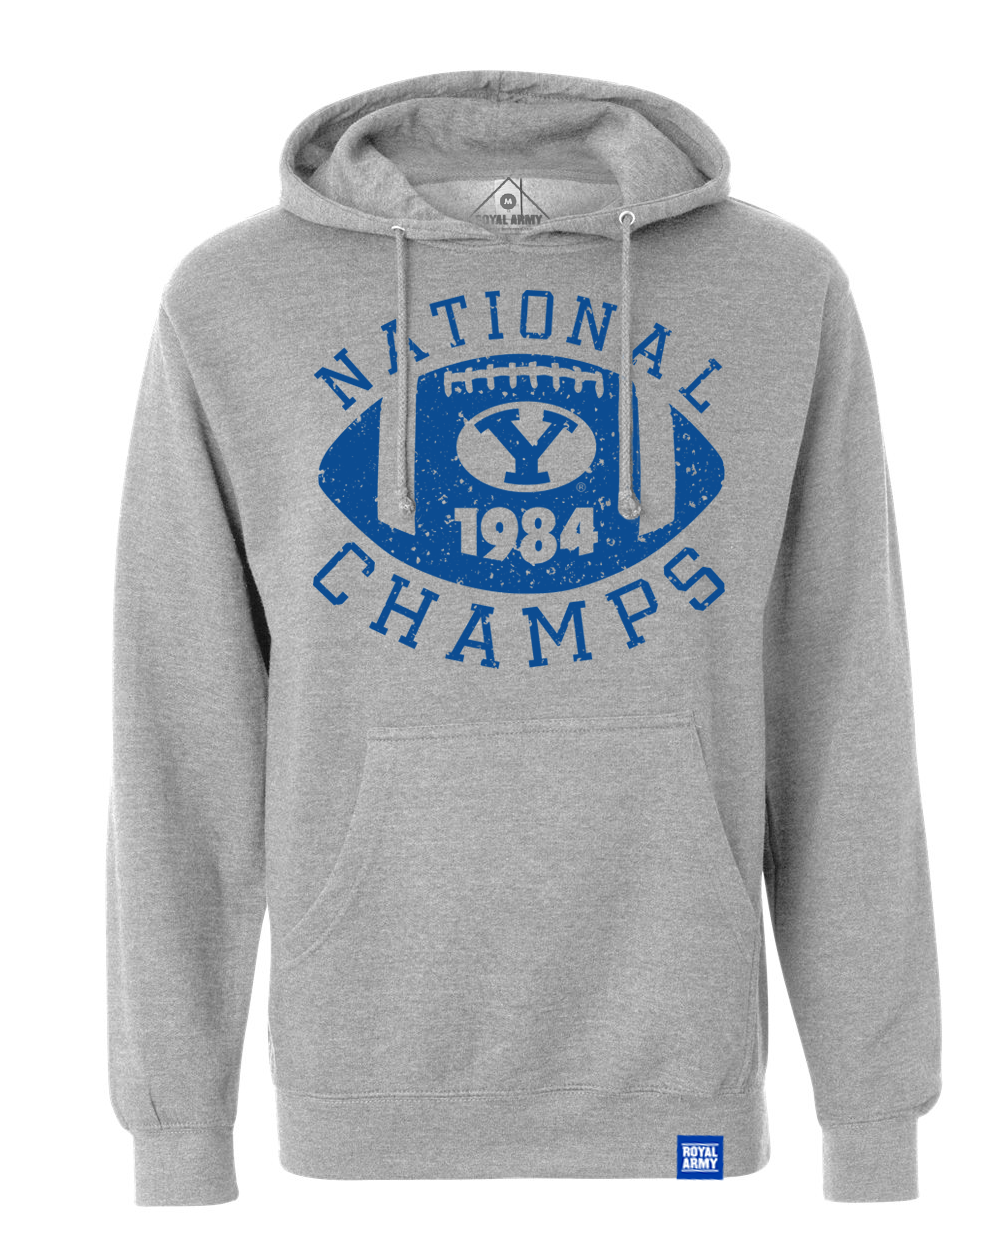 BYU National Champs Hoodie